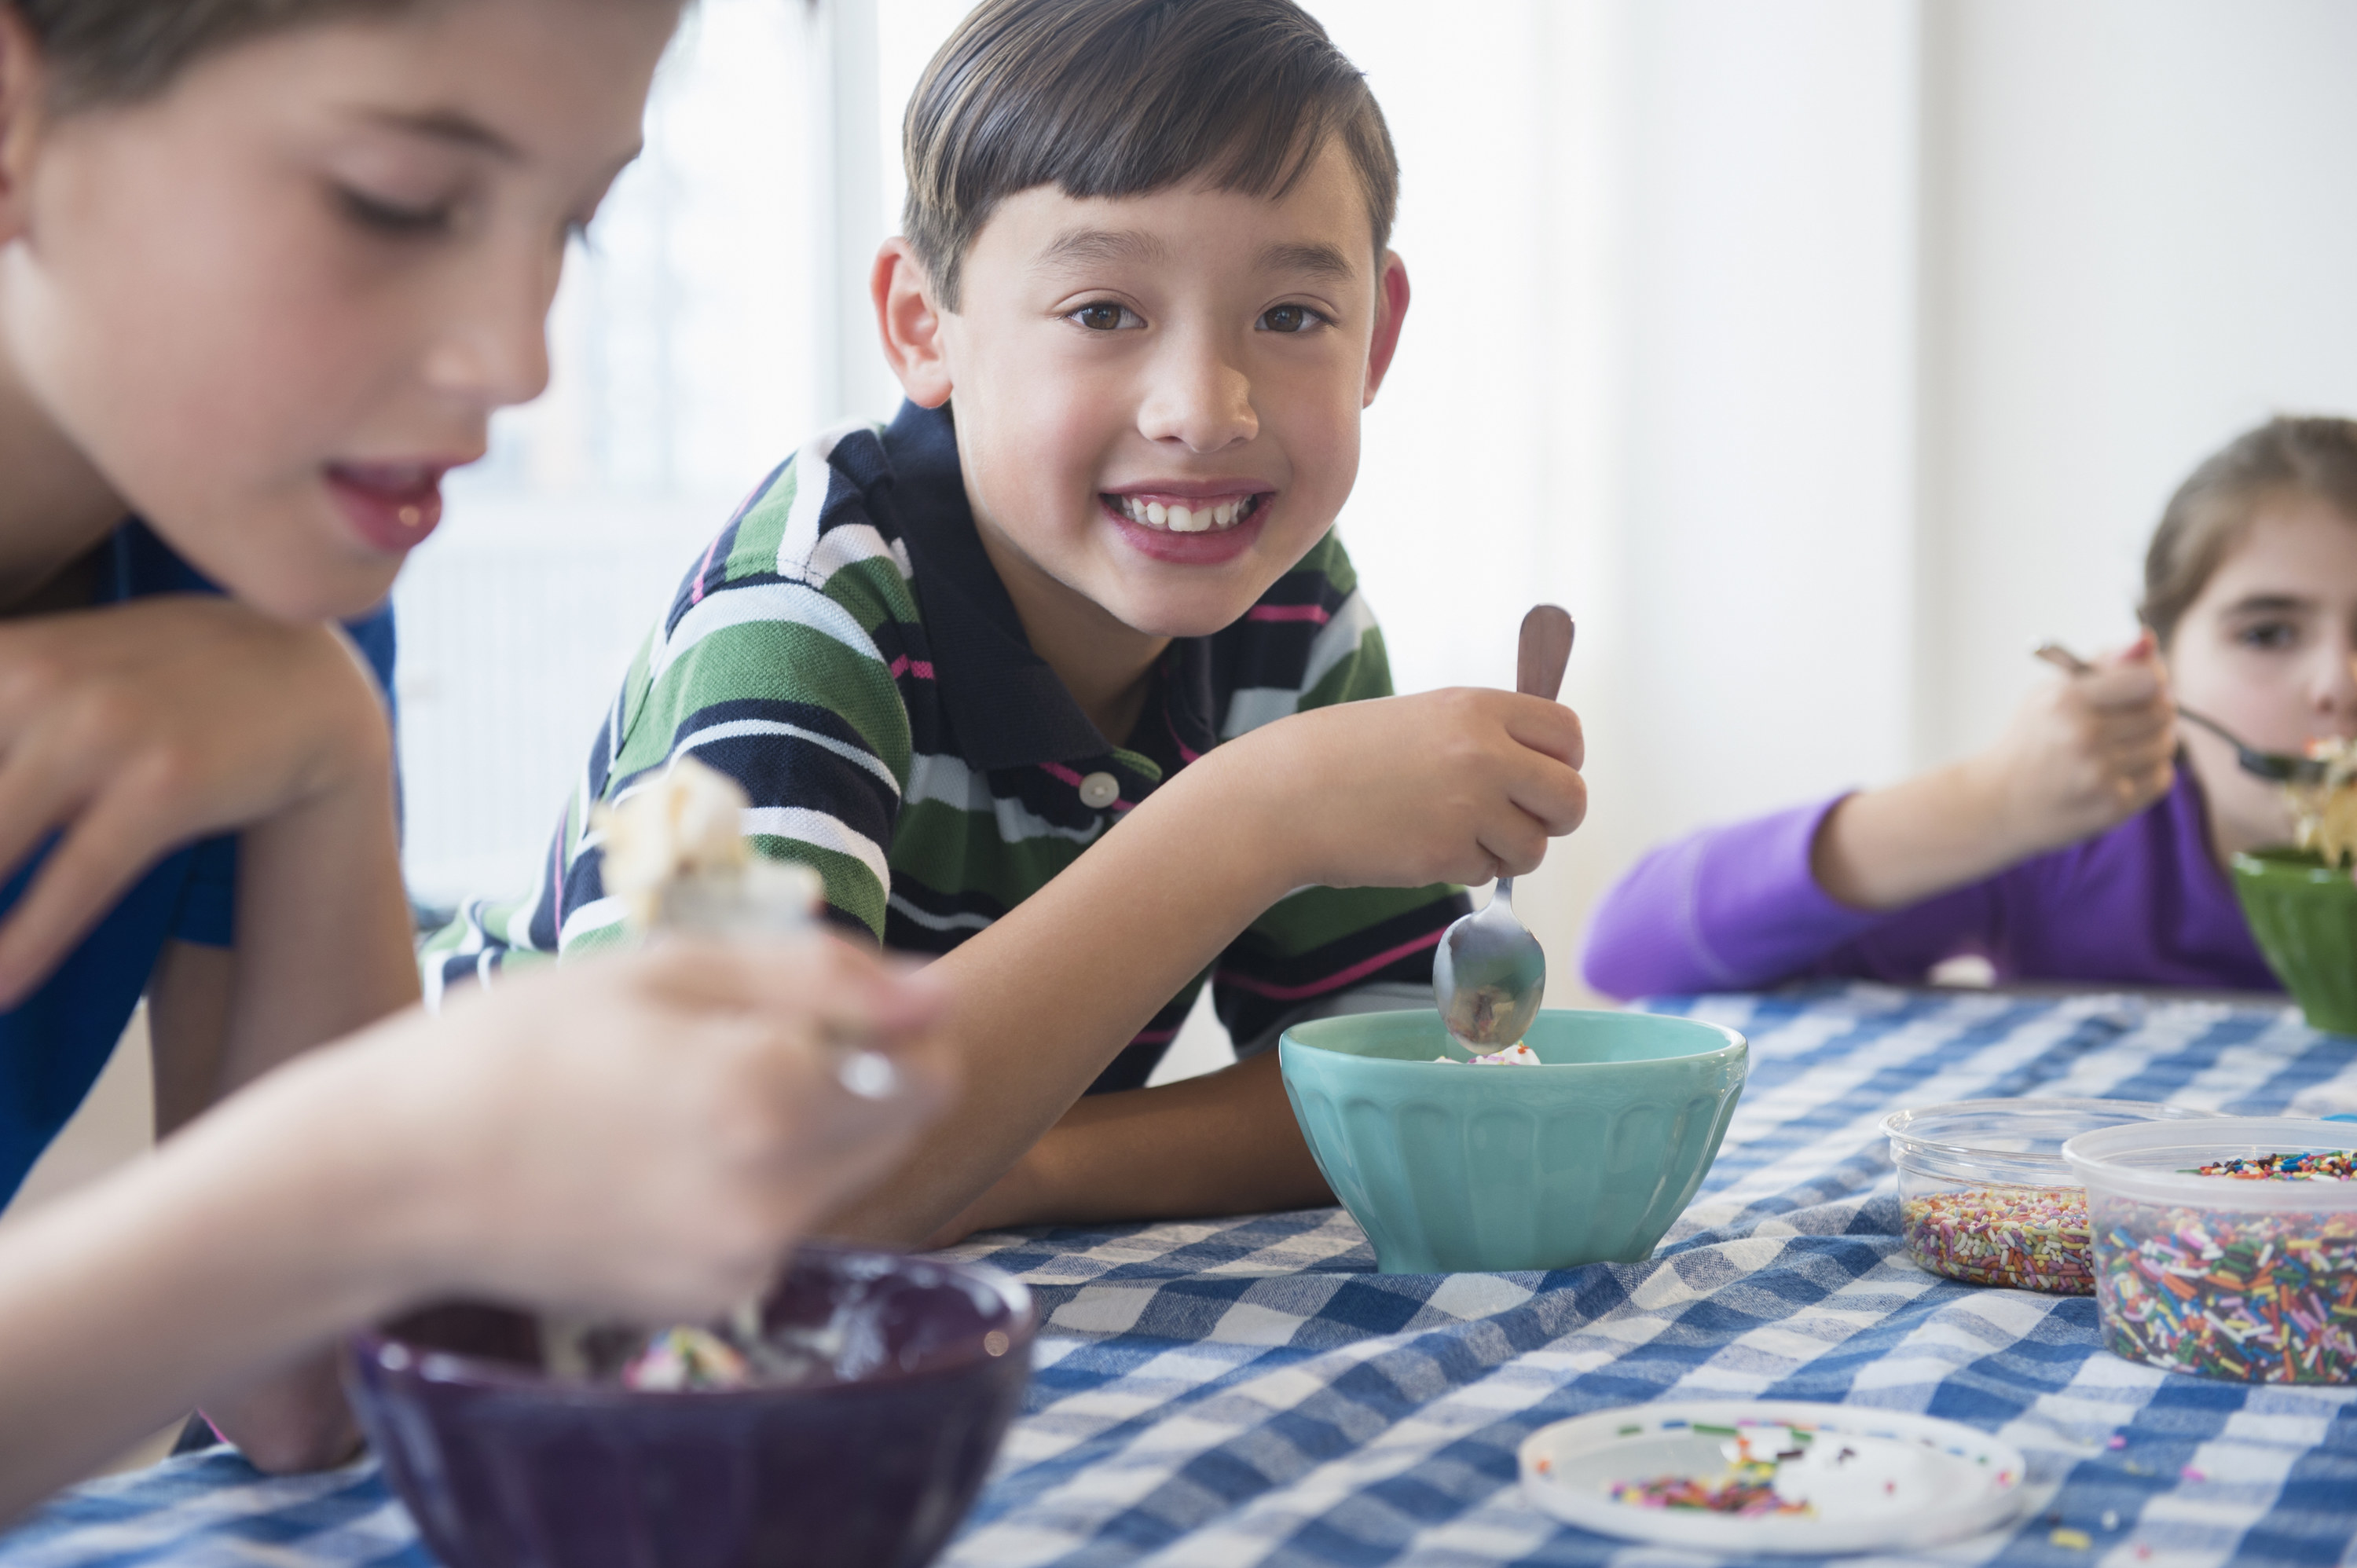 A boy happily looks on as he digs into his ice cream sundae.